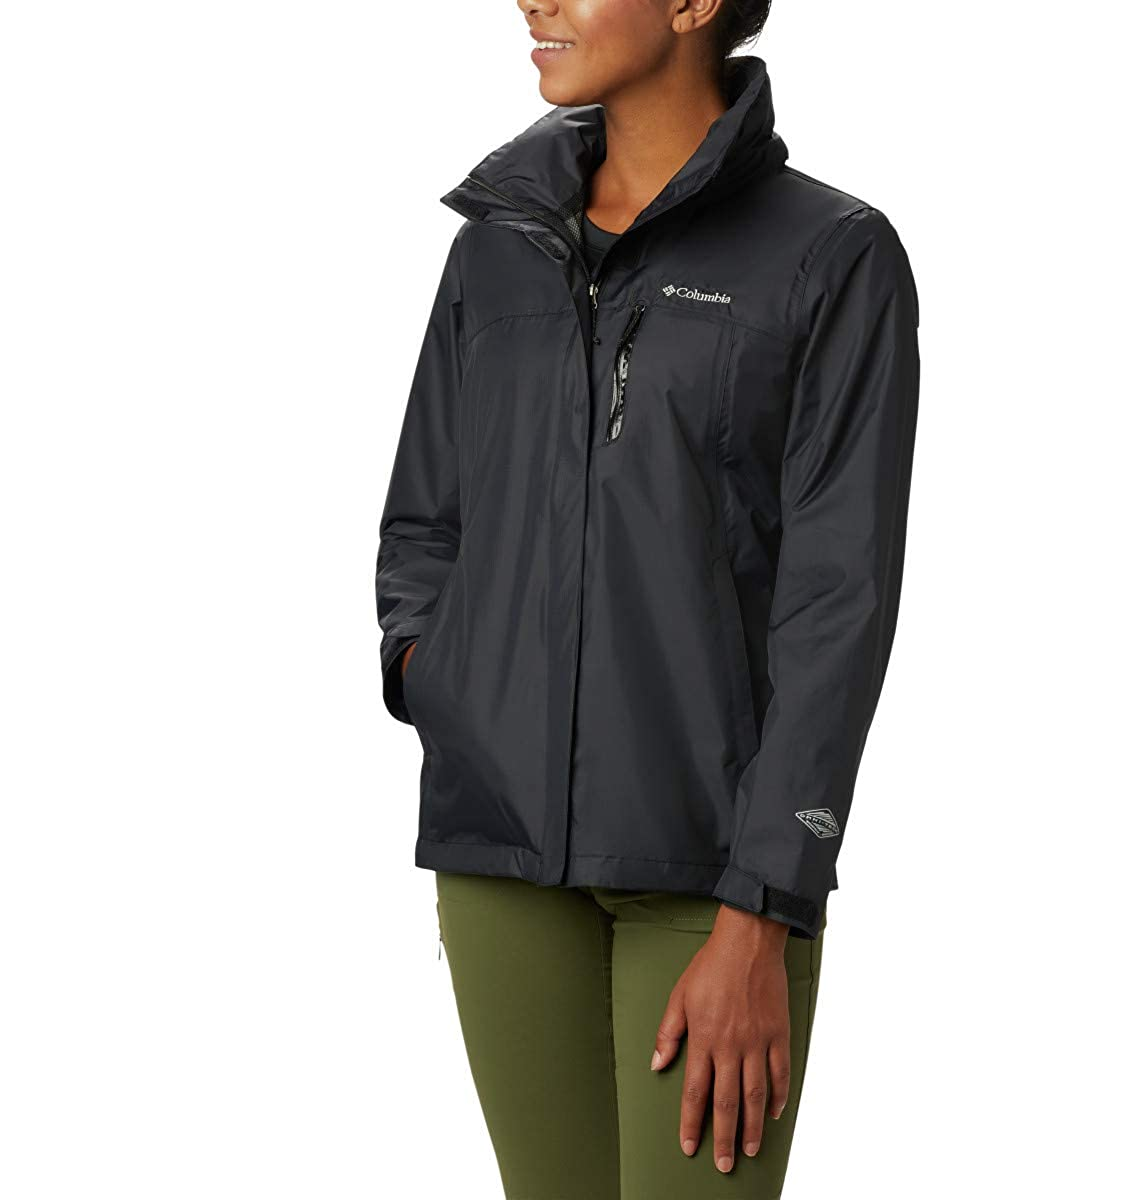 Columbia Womens Pouration Jacket, Waterproof & Breathable